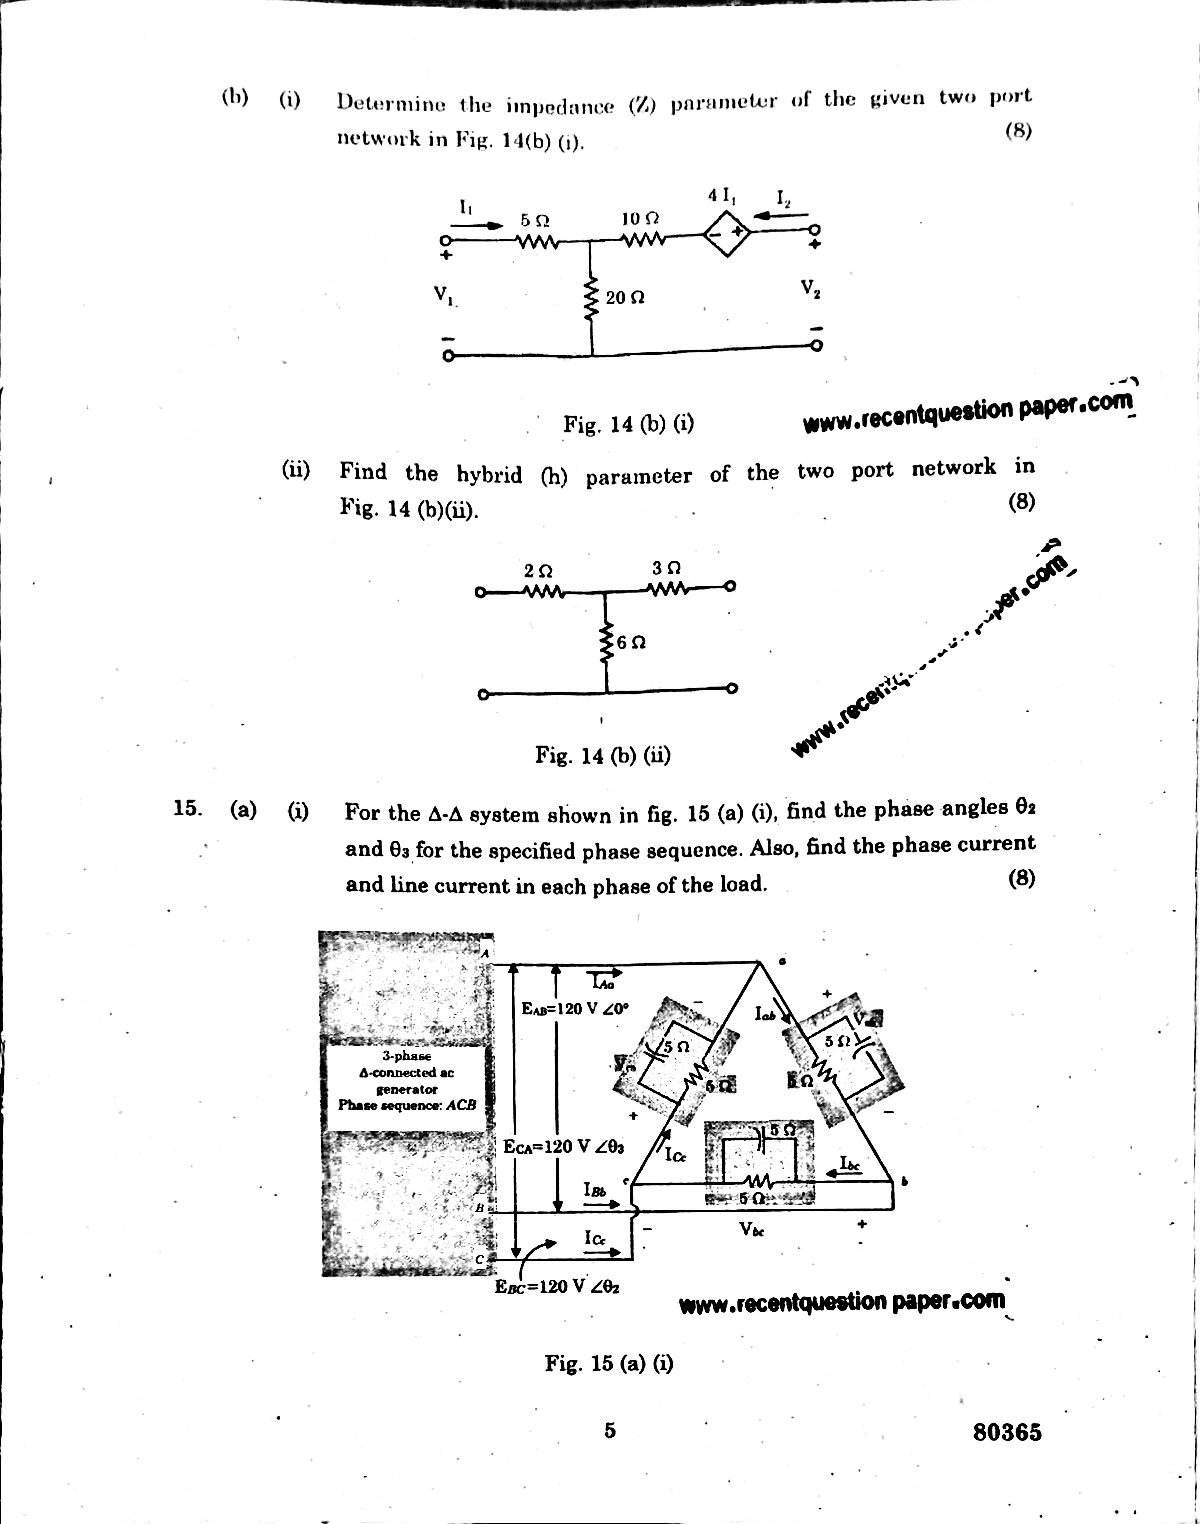 EE6201 CIRCUIT THEORY 2 - Recent Question Paper